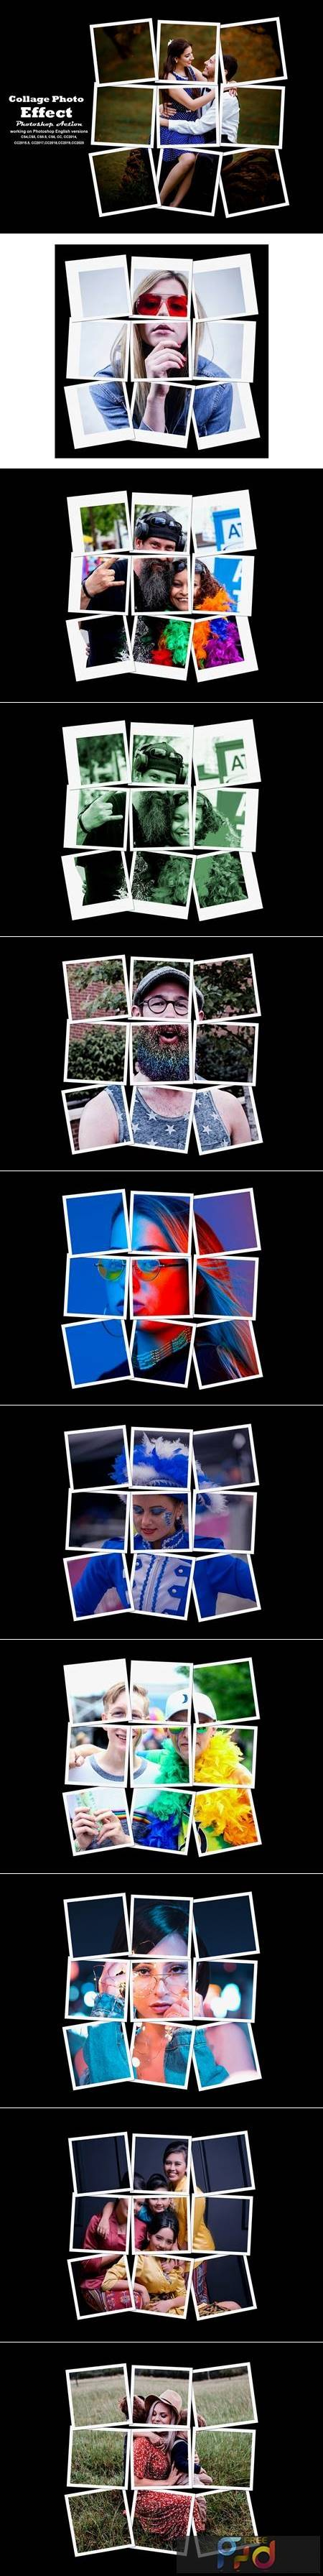 Collage Photo Effect PS Action 5540326 1